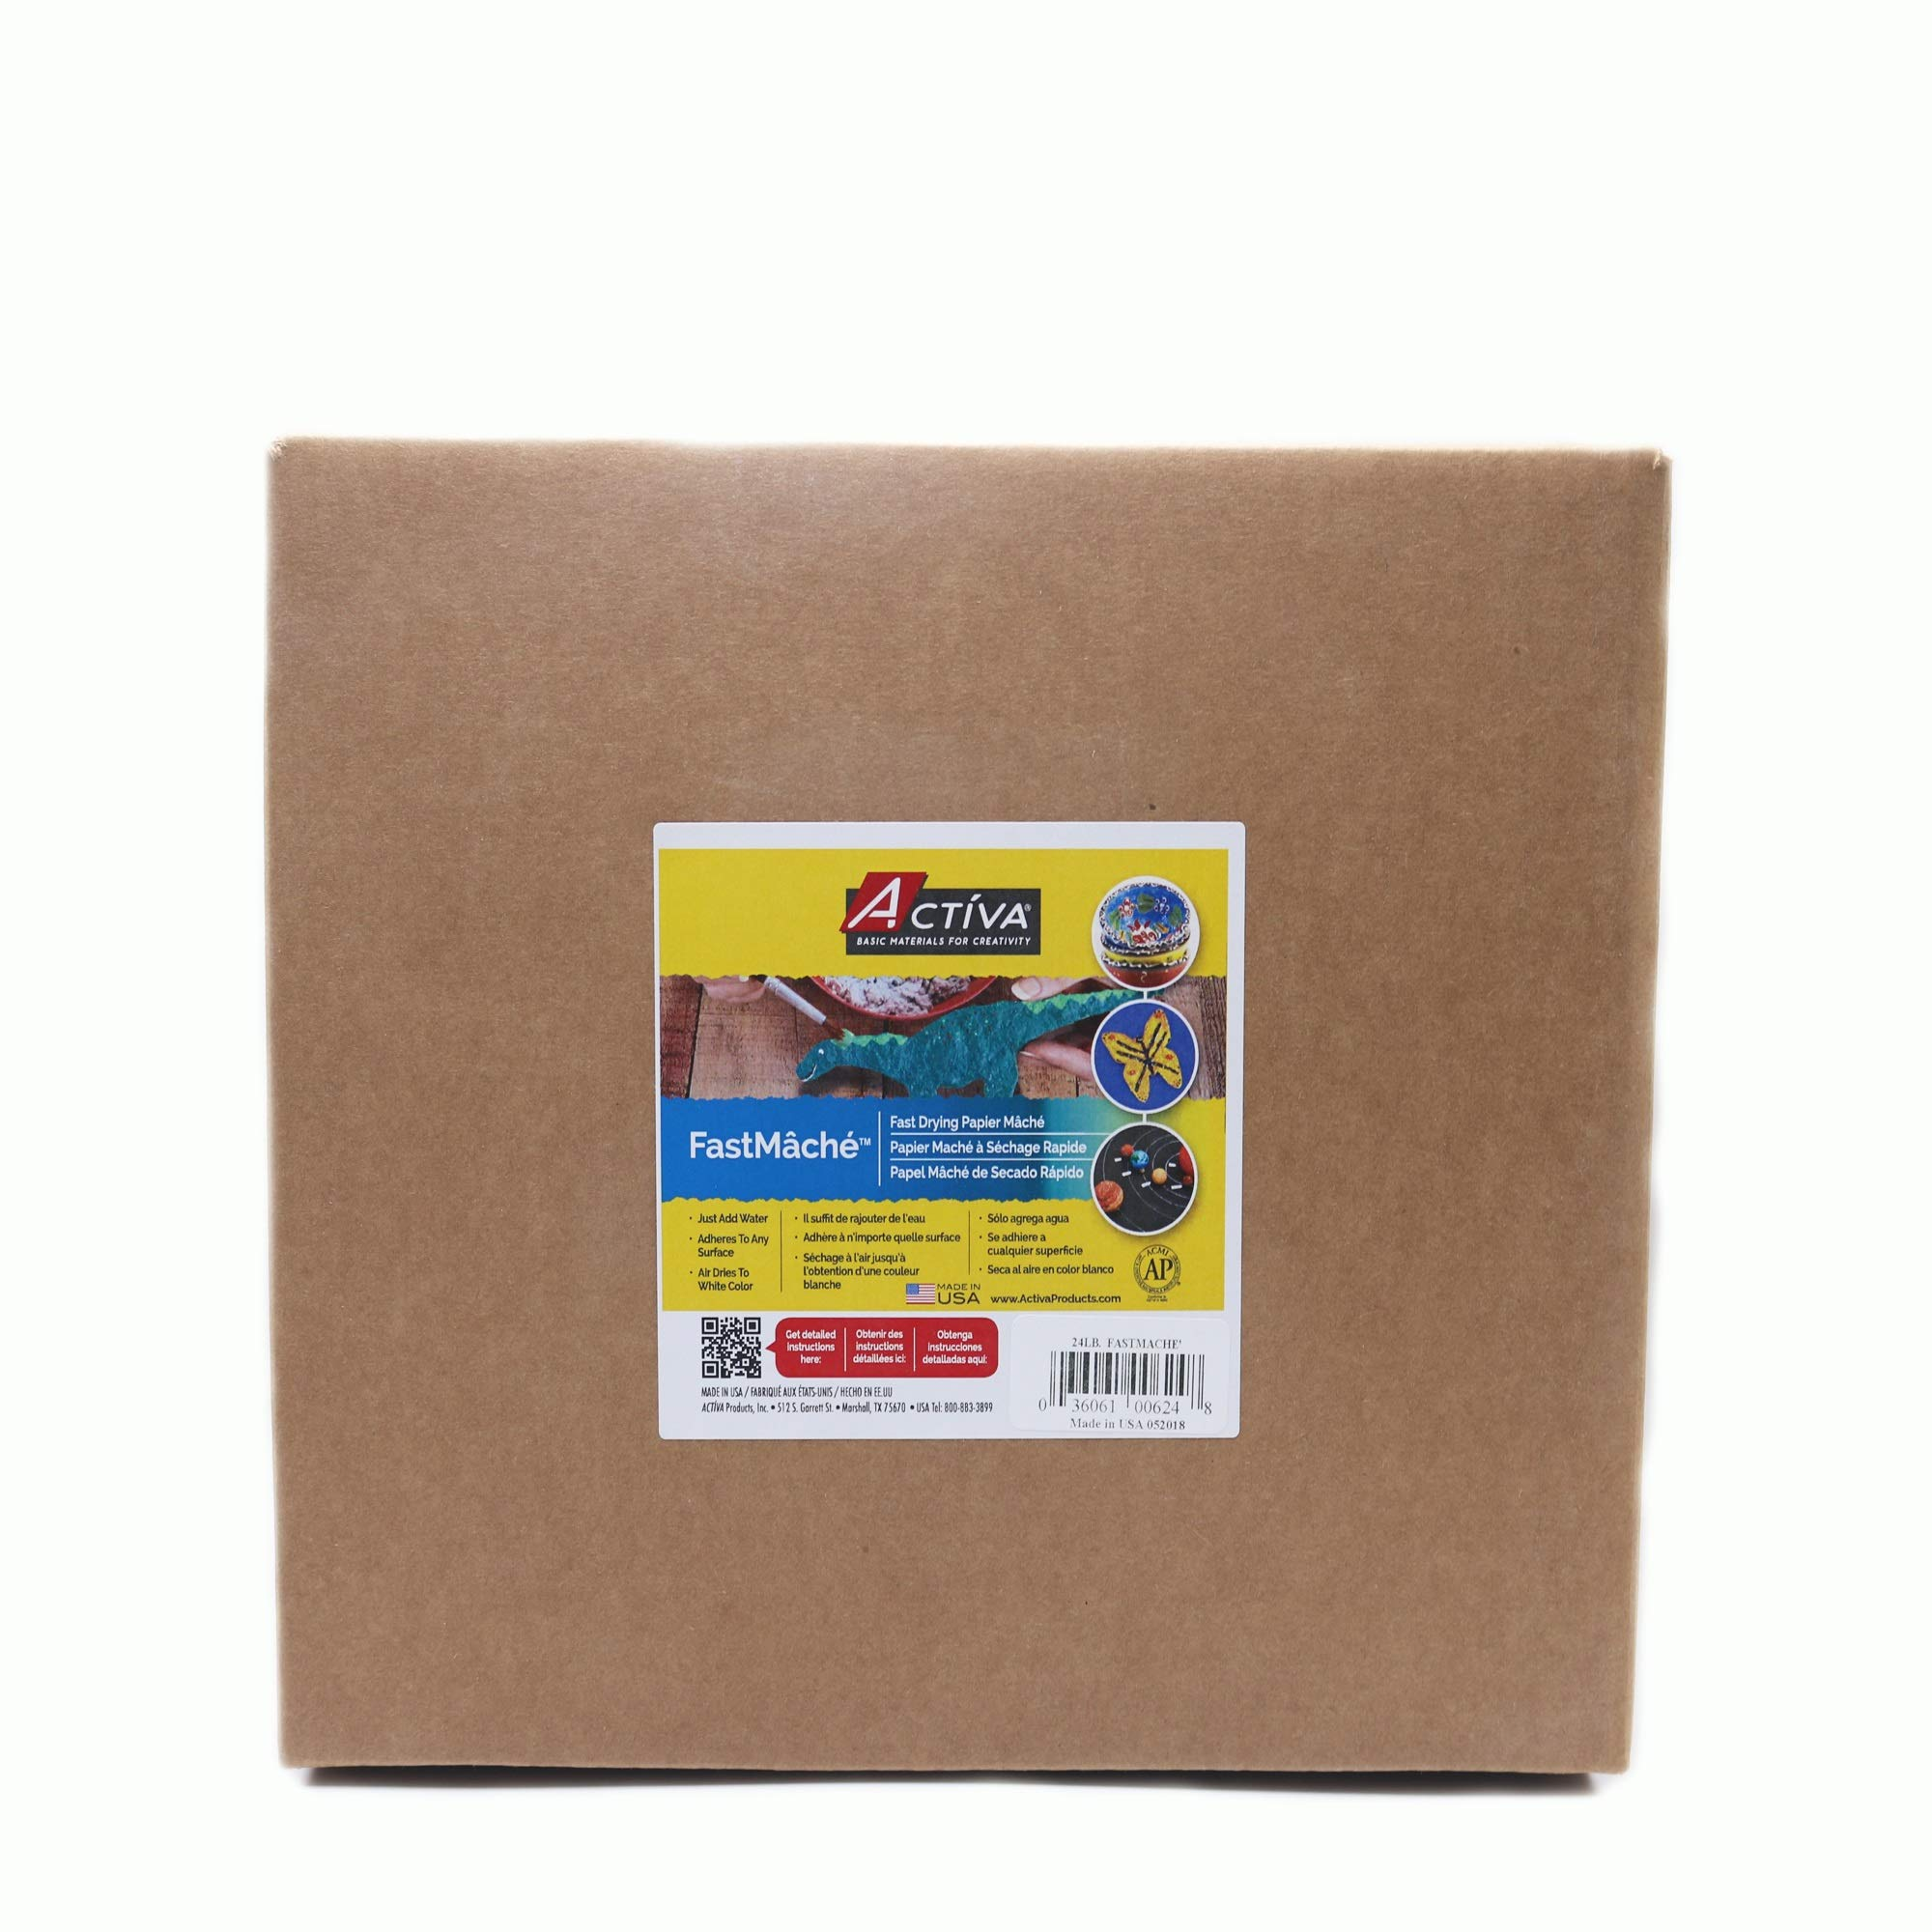 ACTIVA Fast Mache Fast Drying Instant Papier Mache - 24 pounds by Activa Products (Image #1)